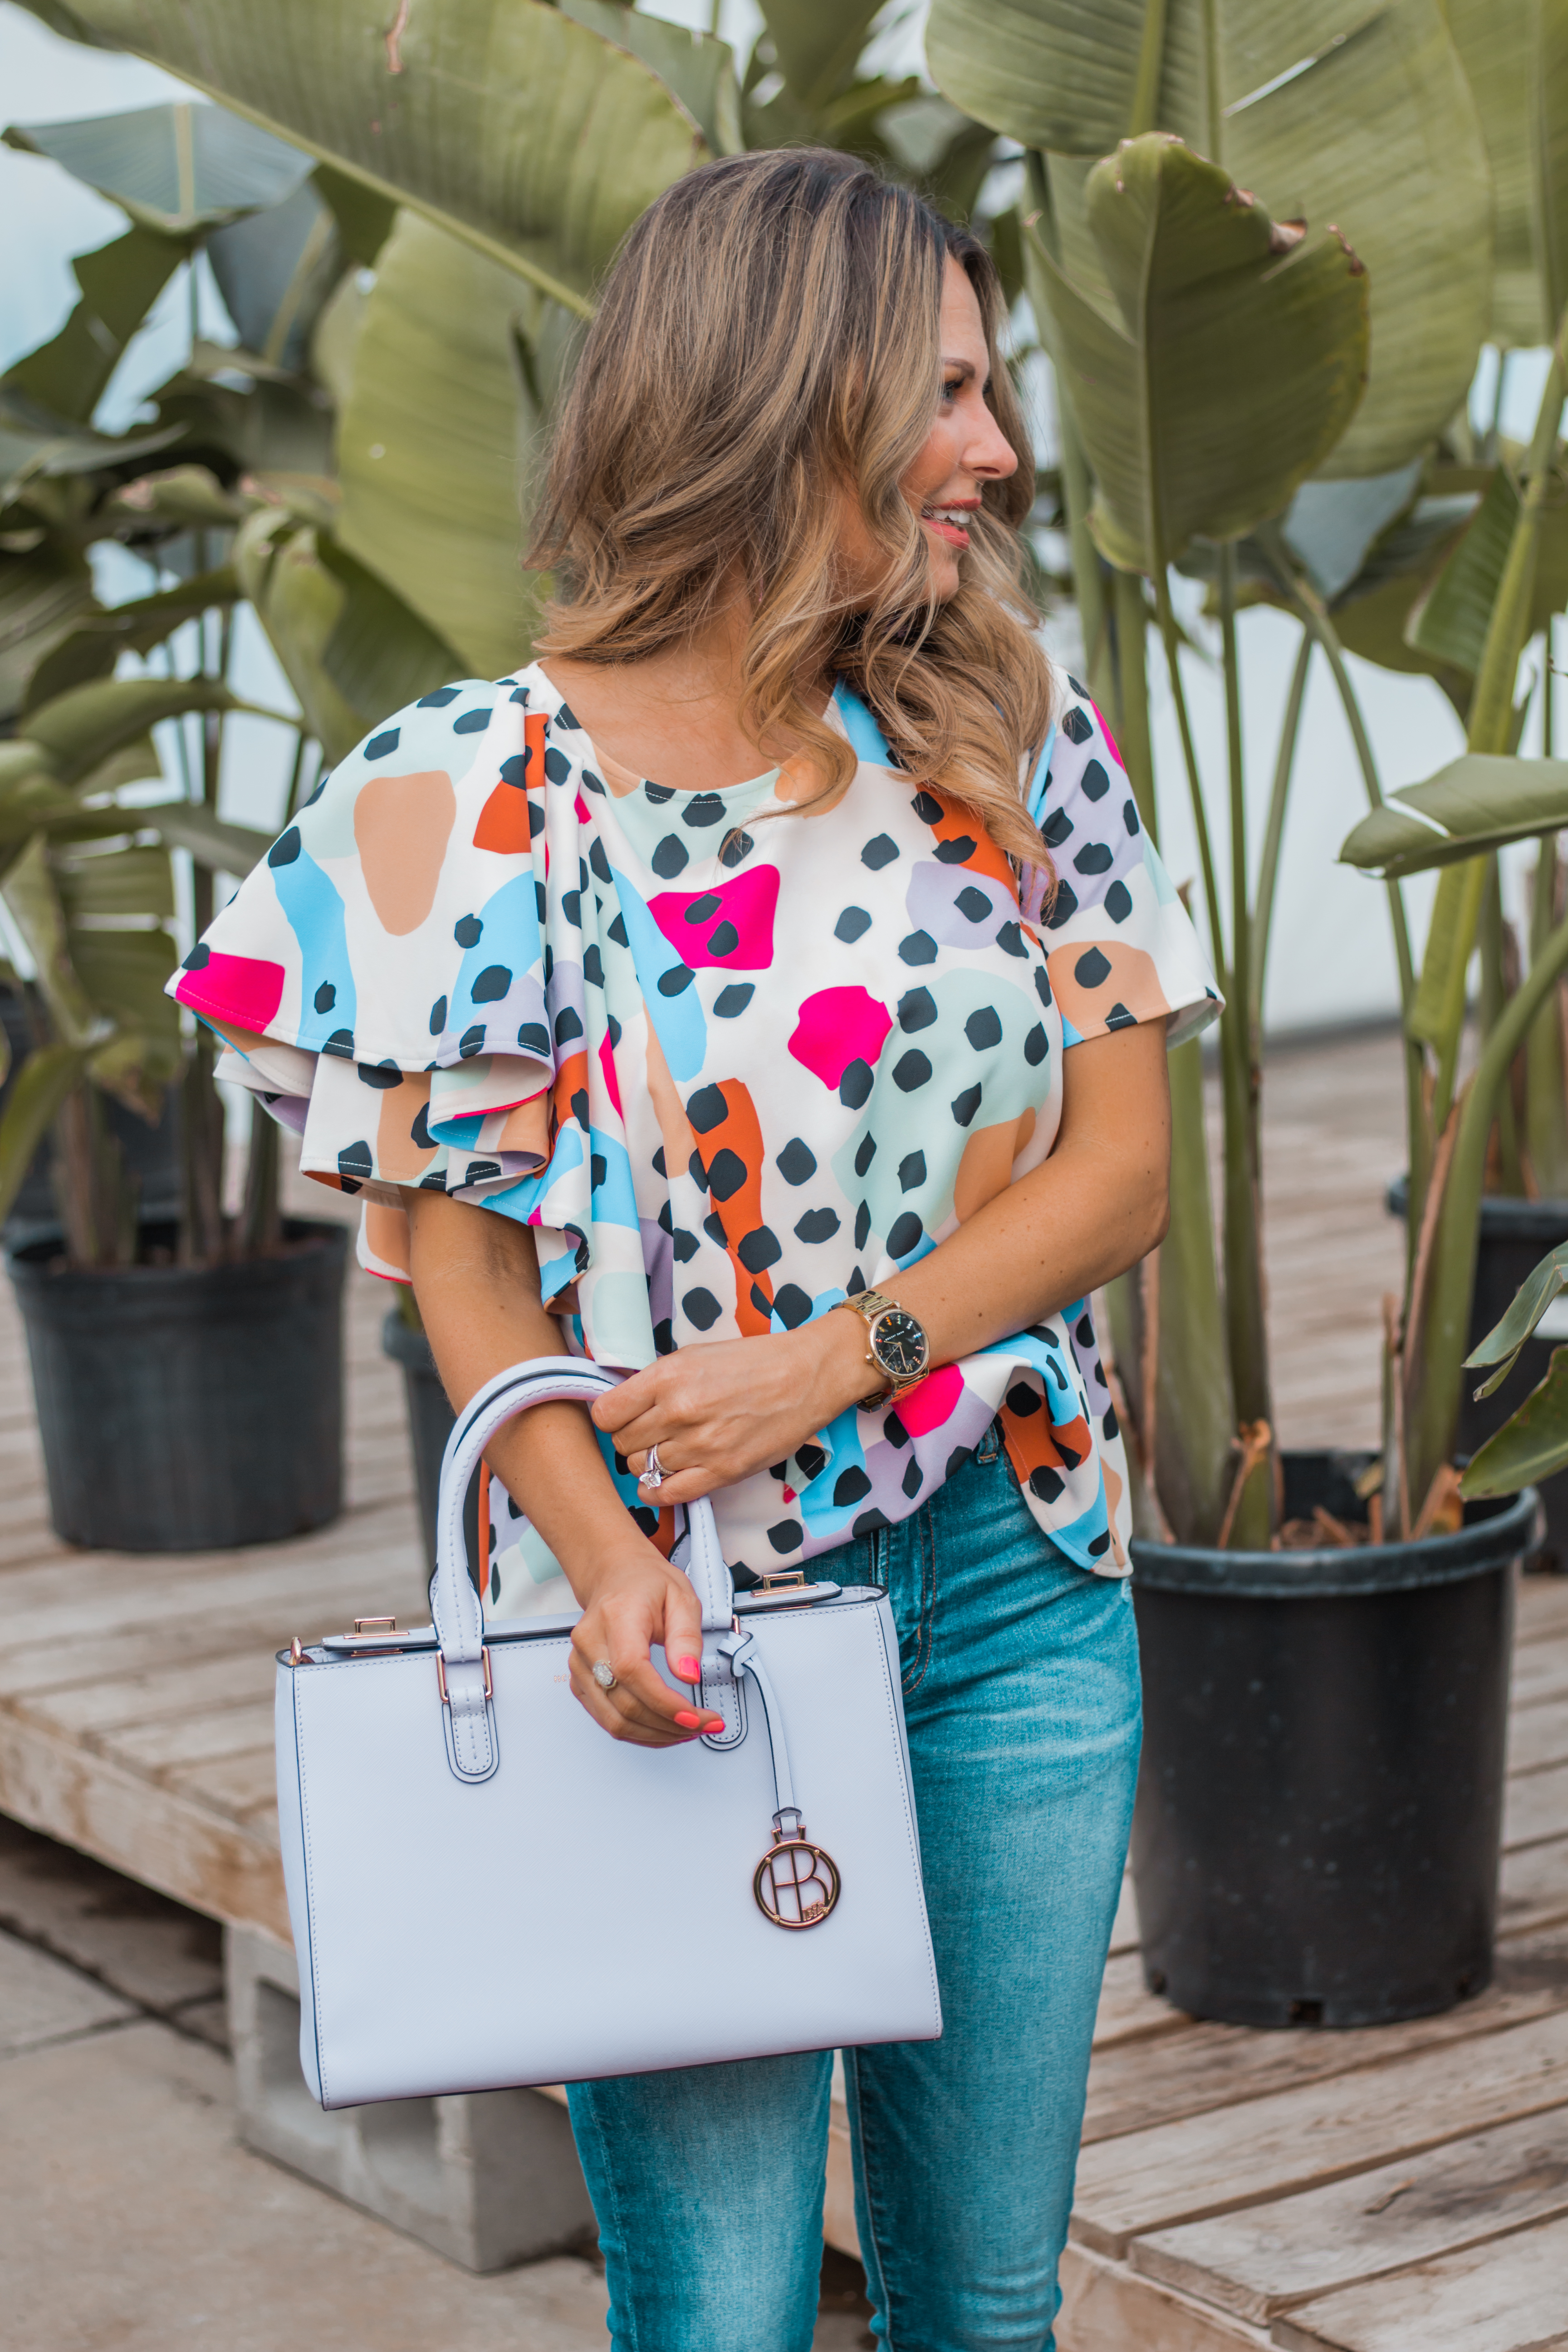 Women's Fashion - Crosby by Mollie Birch - Tassel Earrings - Spring Fashion - Spring Outfit - Sabby Style - 9